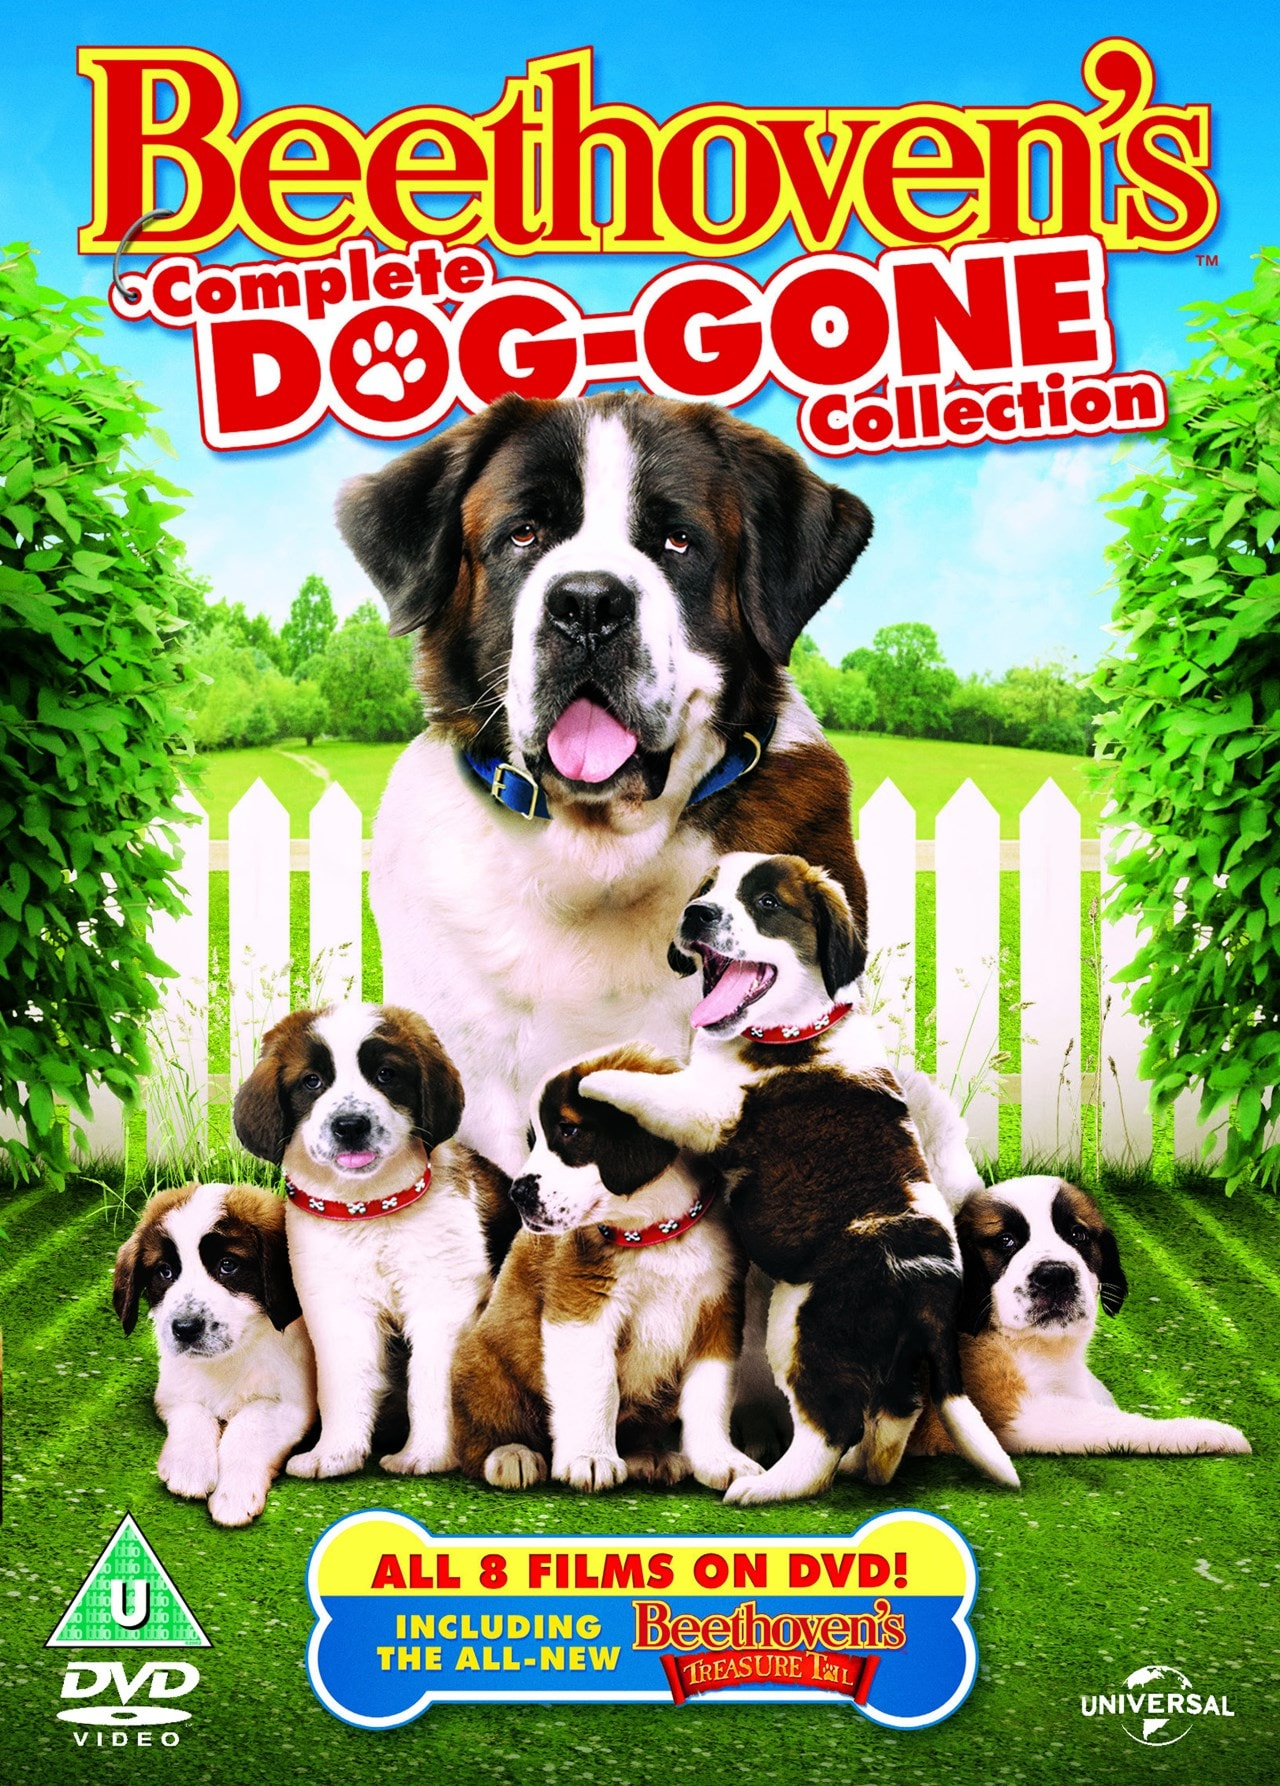 Beethoven's Complete Dog-gone Collection - 1